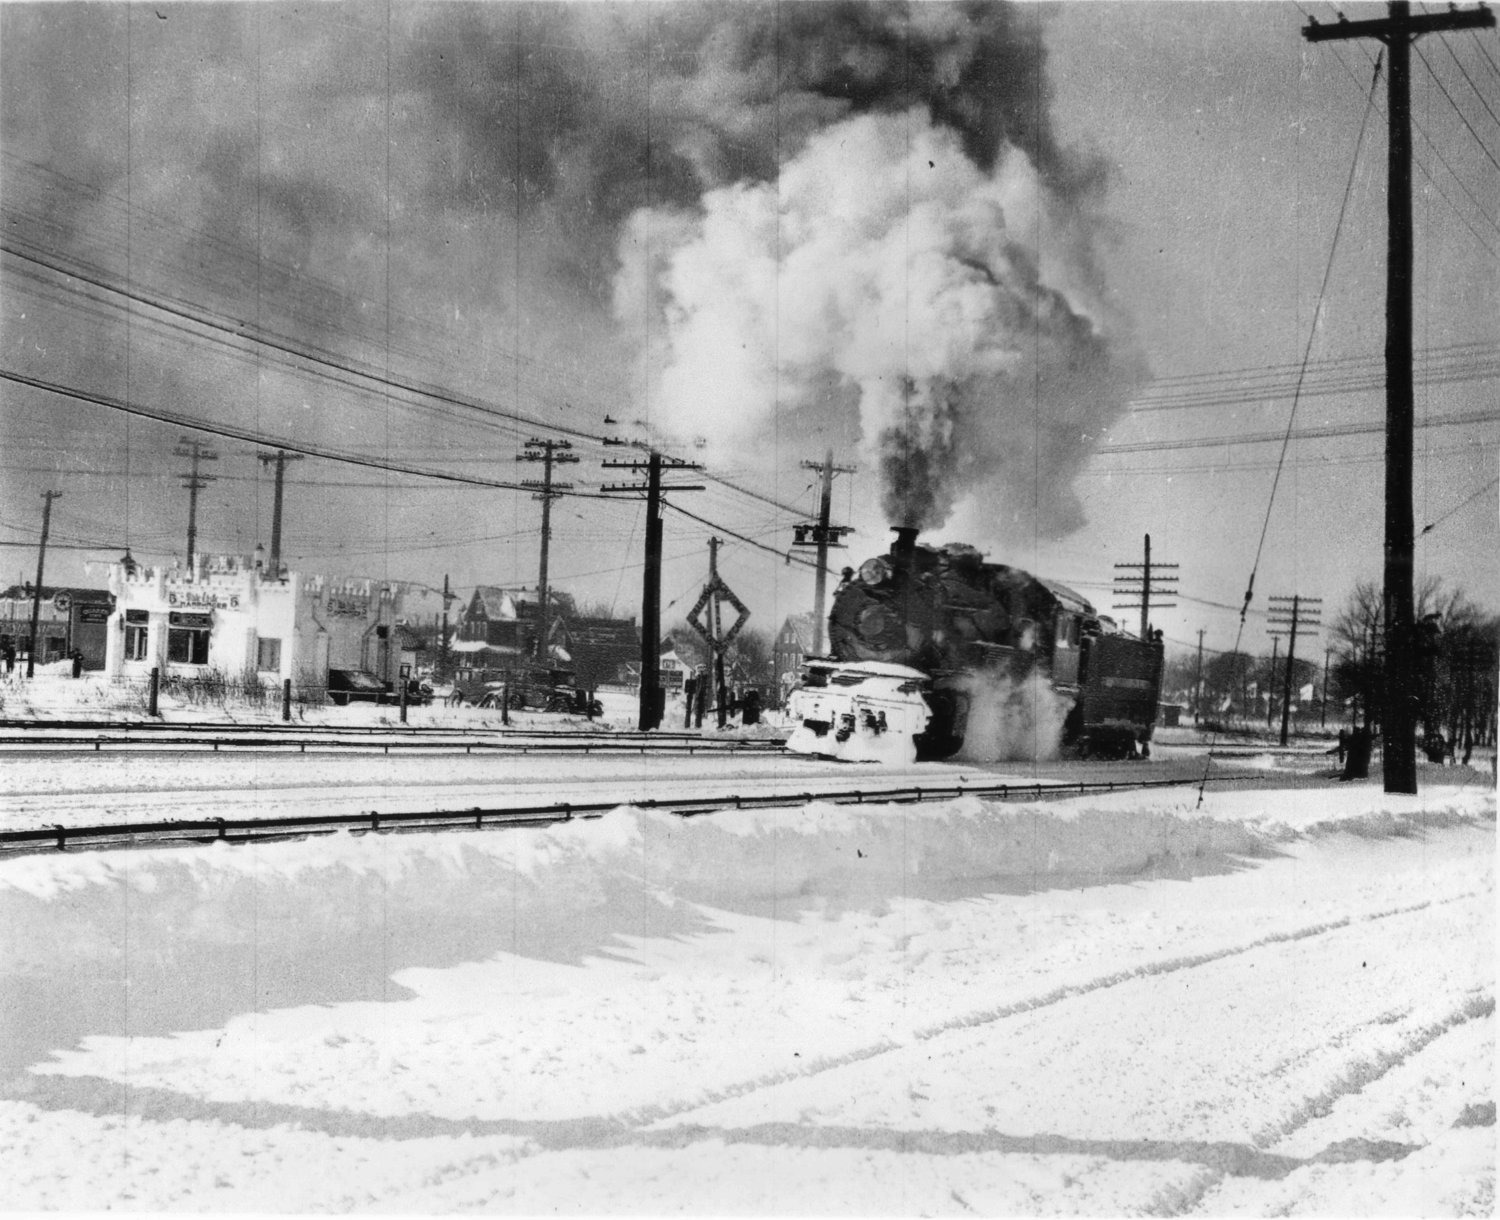 A Long Island Rail Road steam train crossed Broadway near White Castle in the 1930s.